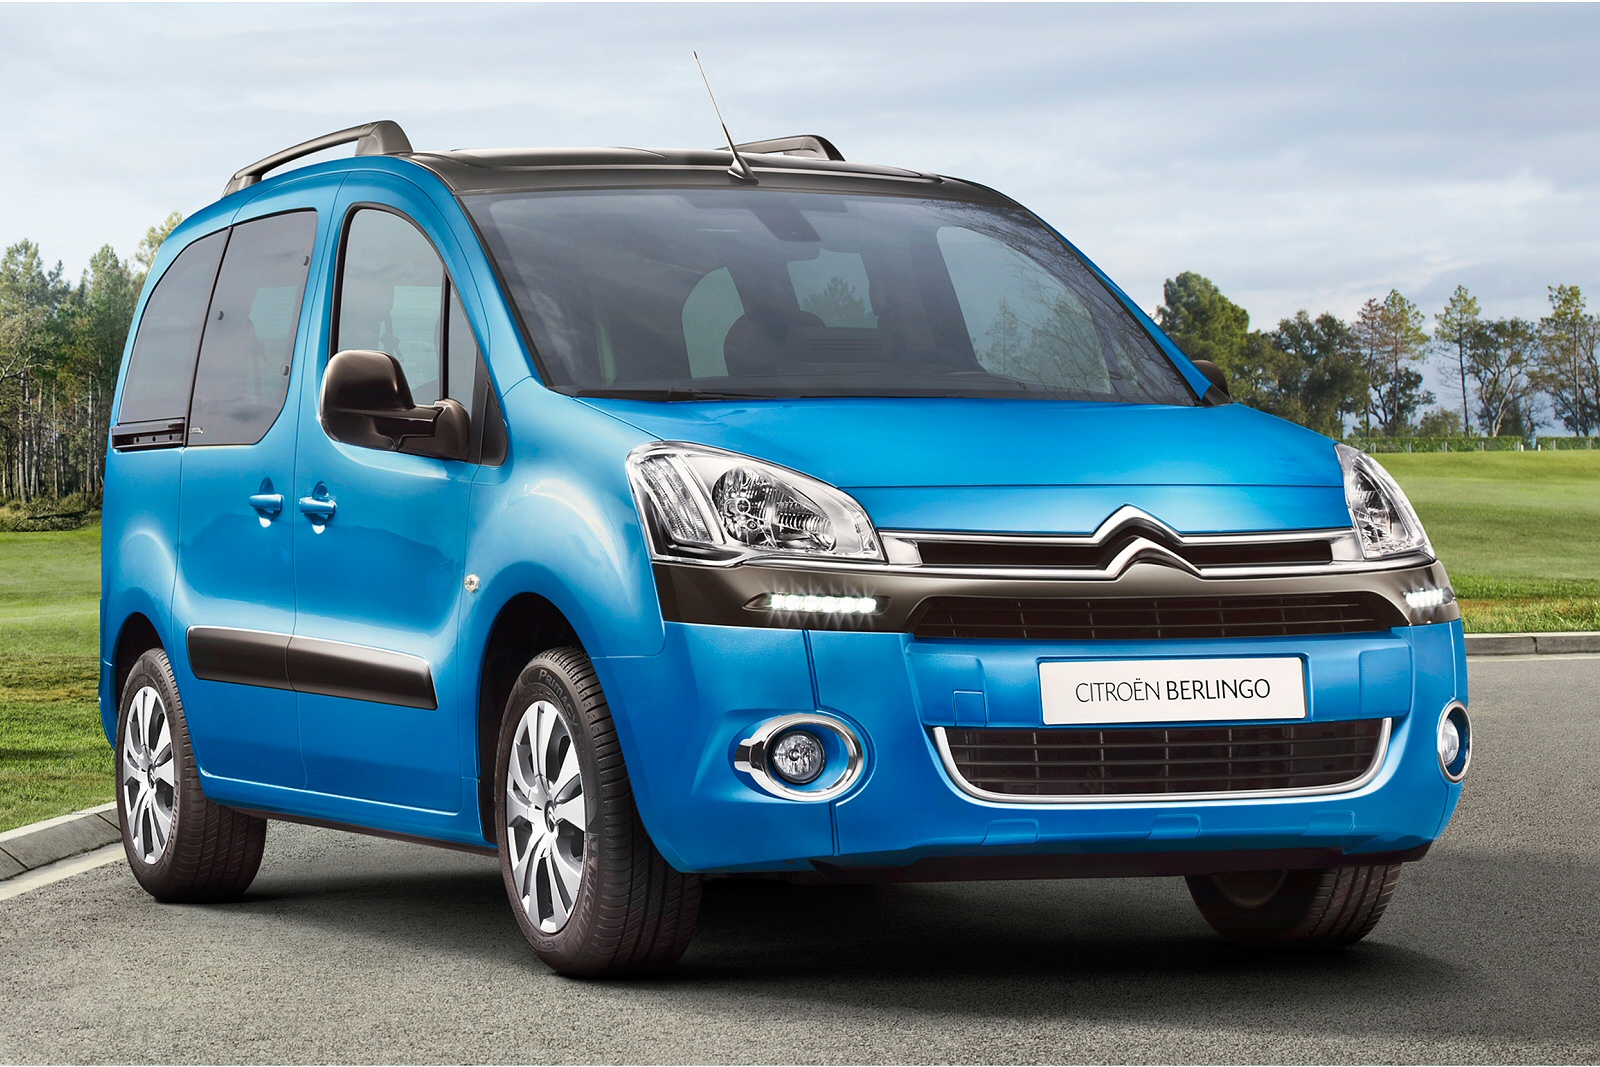 Image two of a Citroen Berlingo Multispace